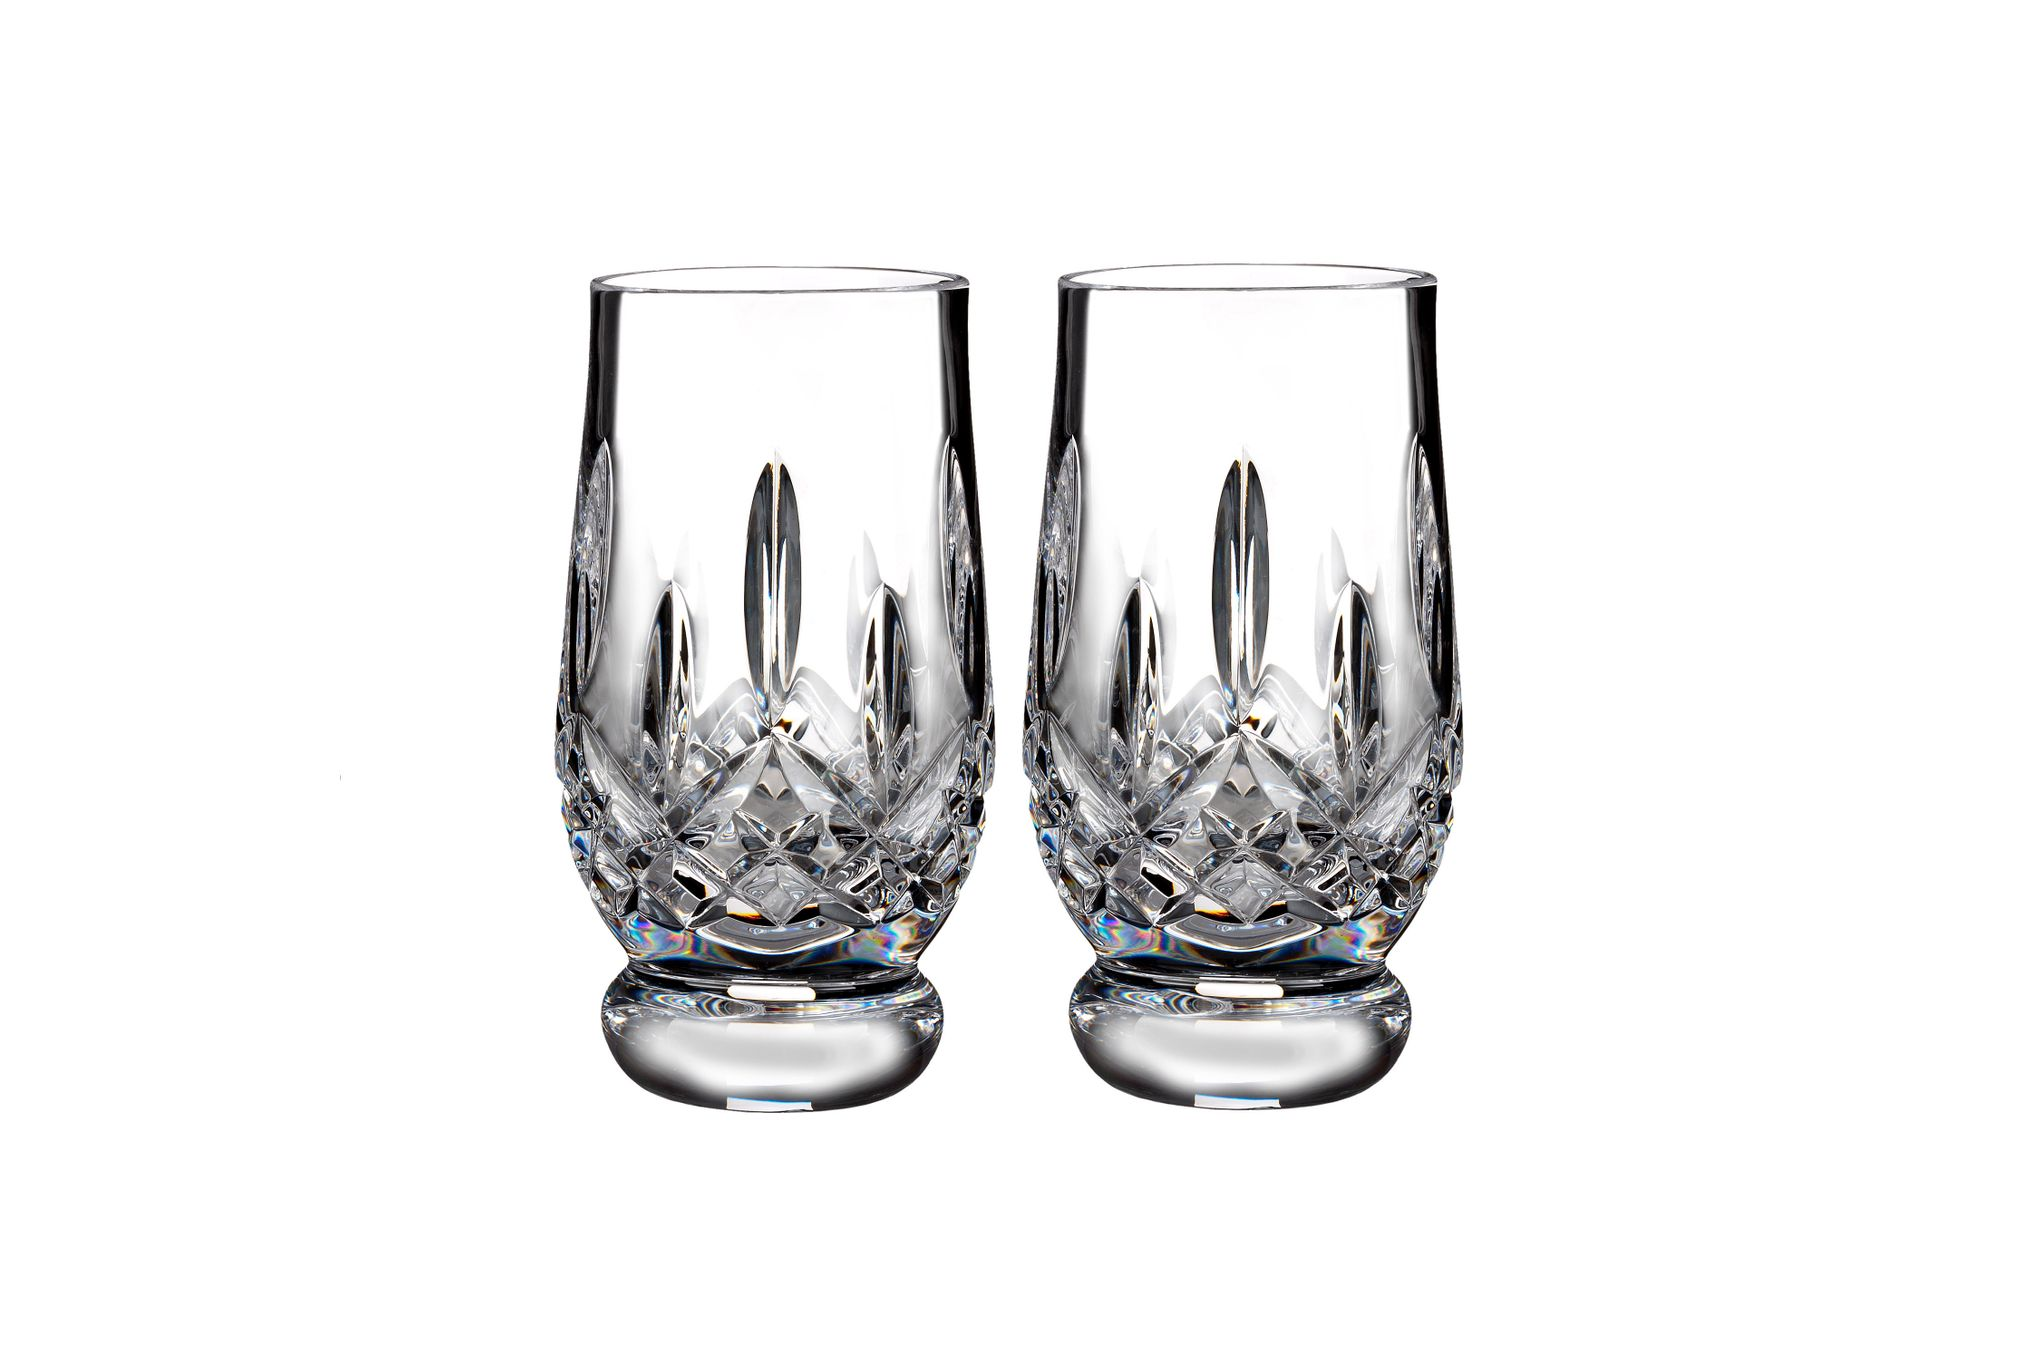 Waterford Lismore Connoisseur Collection Pair of Tumblers 7oz Tasting Footed Tumbler thumb 1